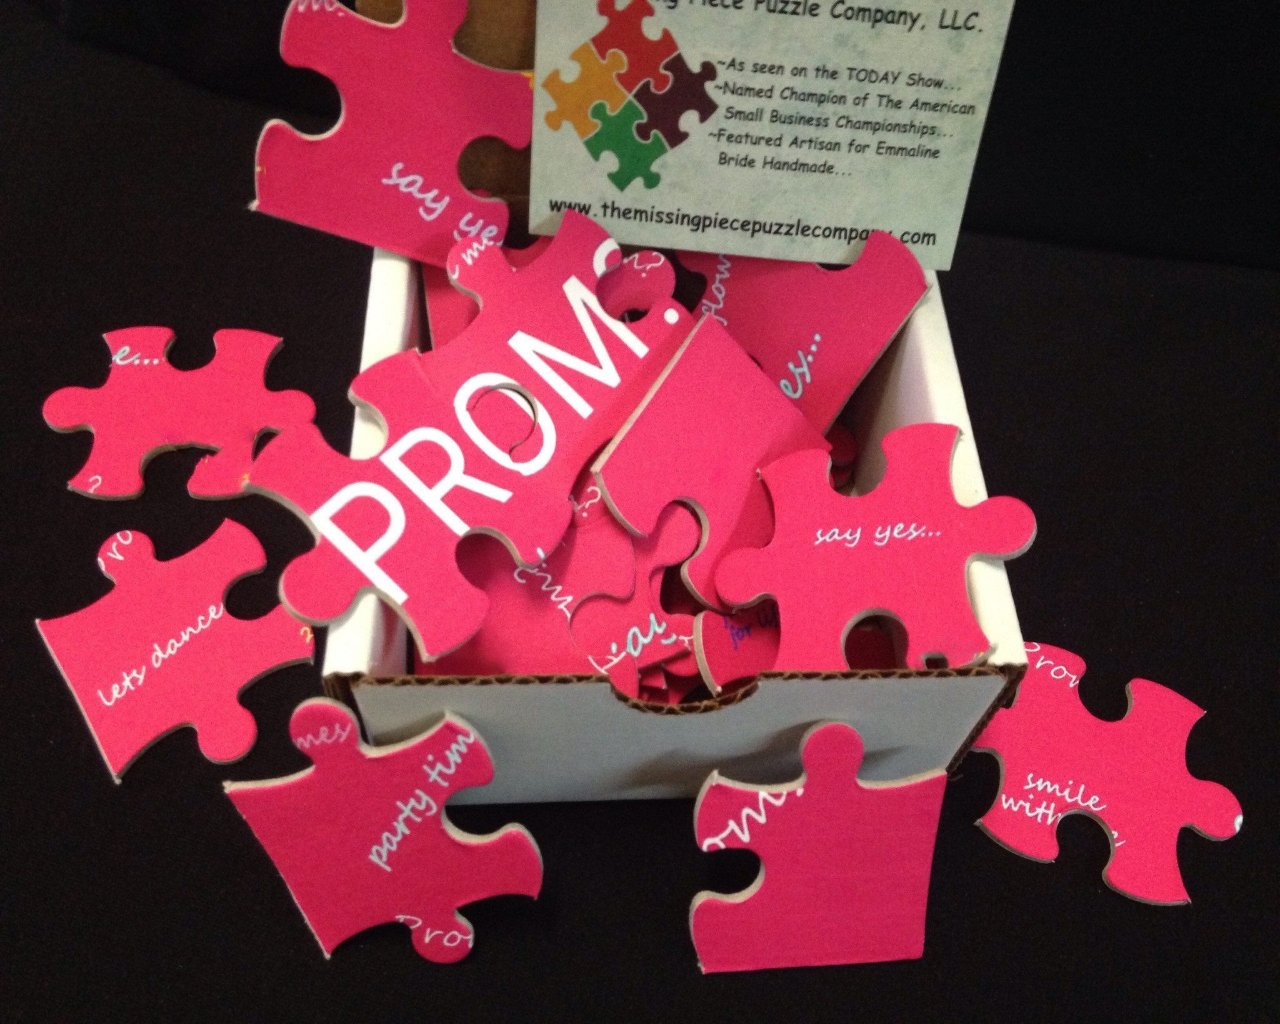 Custom PROMPOSAL Puzzle - Prom Proposal That Is Unique And Fun.  Ask Her Or Him To The Prom With A Promposal Puzzle.